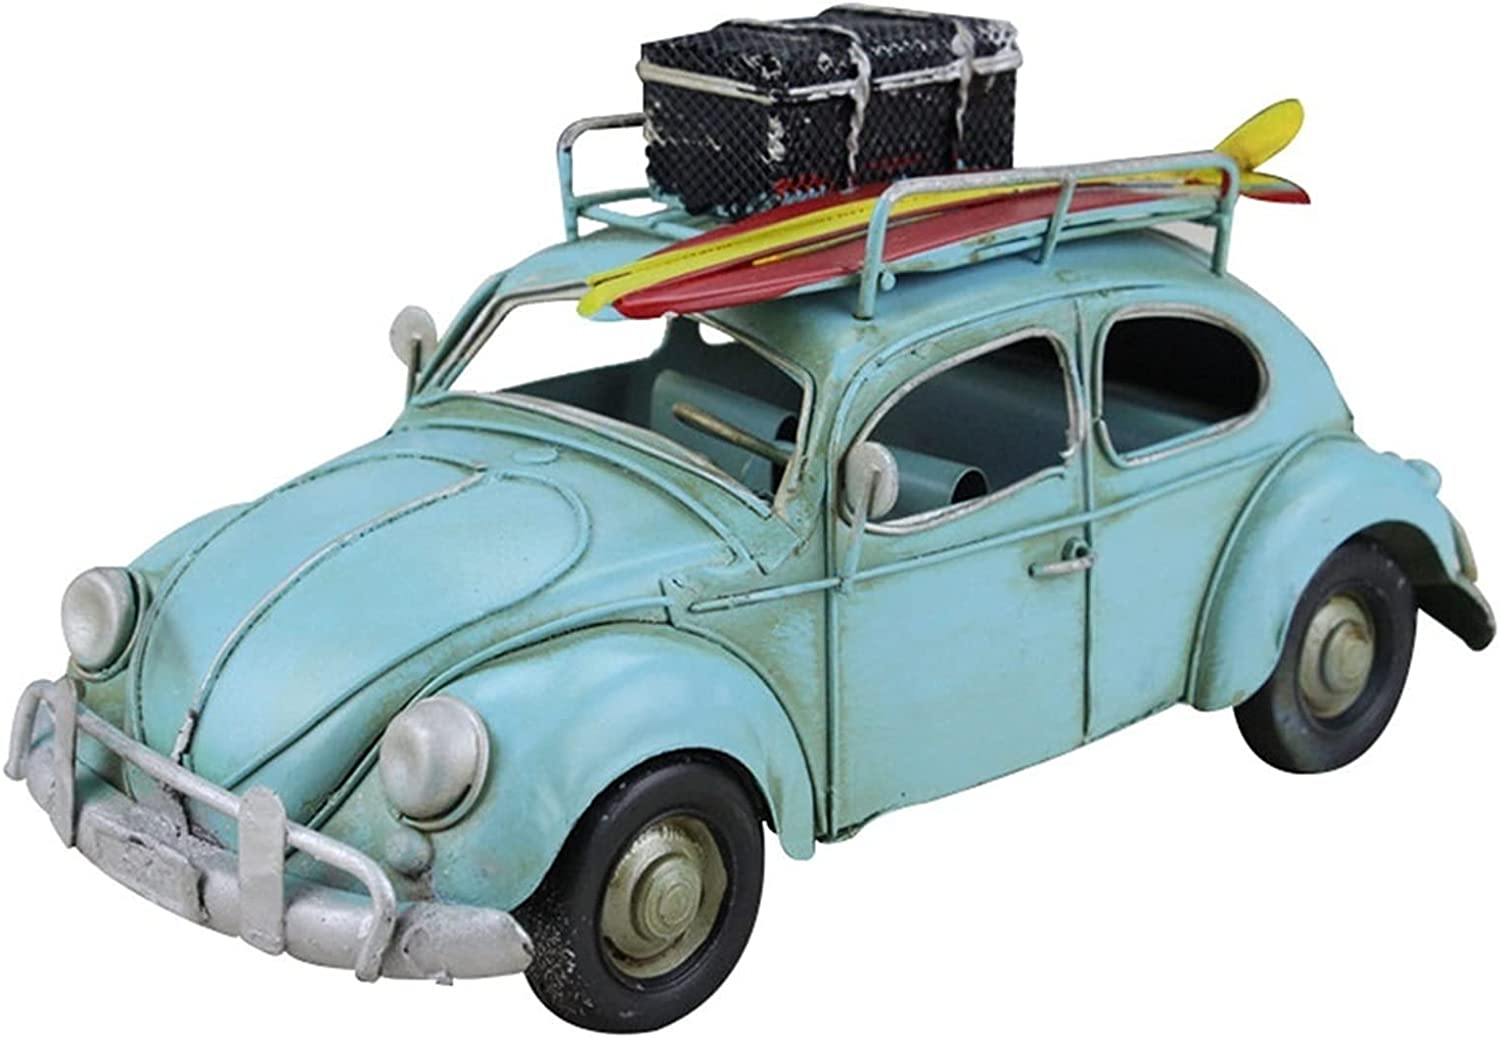 Japan's largest assortment Spring new work one after another Hging Vintage Iron Car Models Model Tin Antique Home